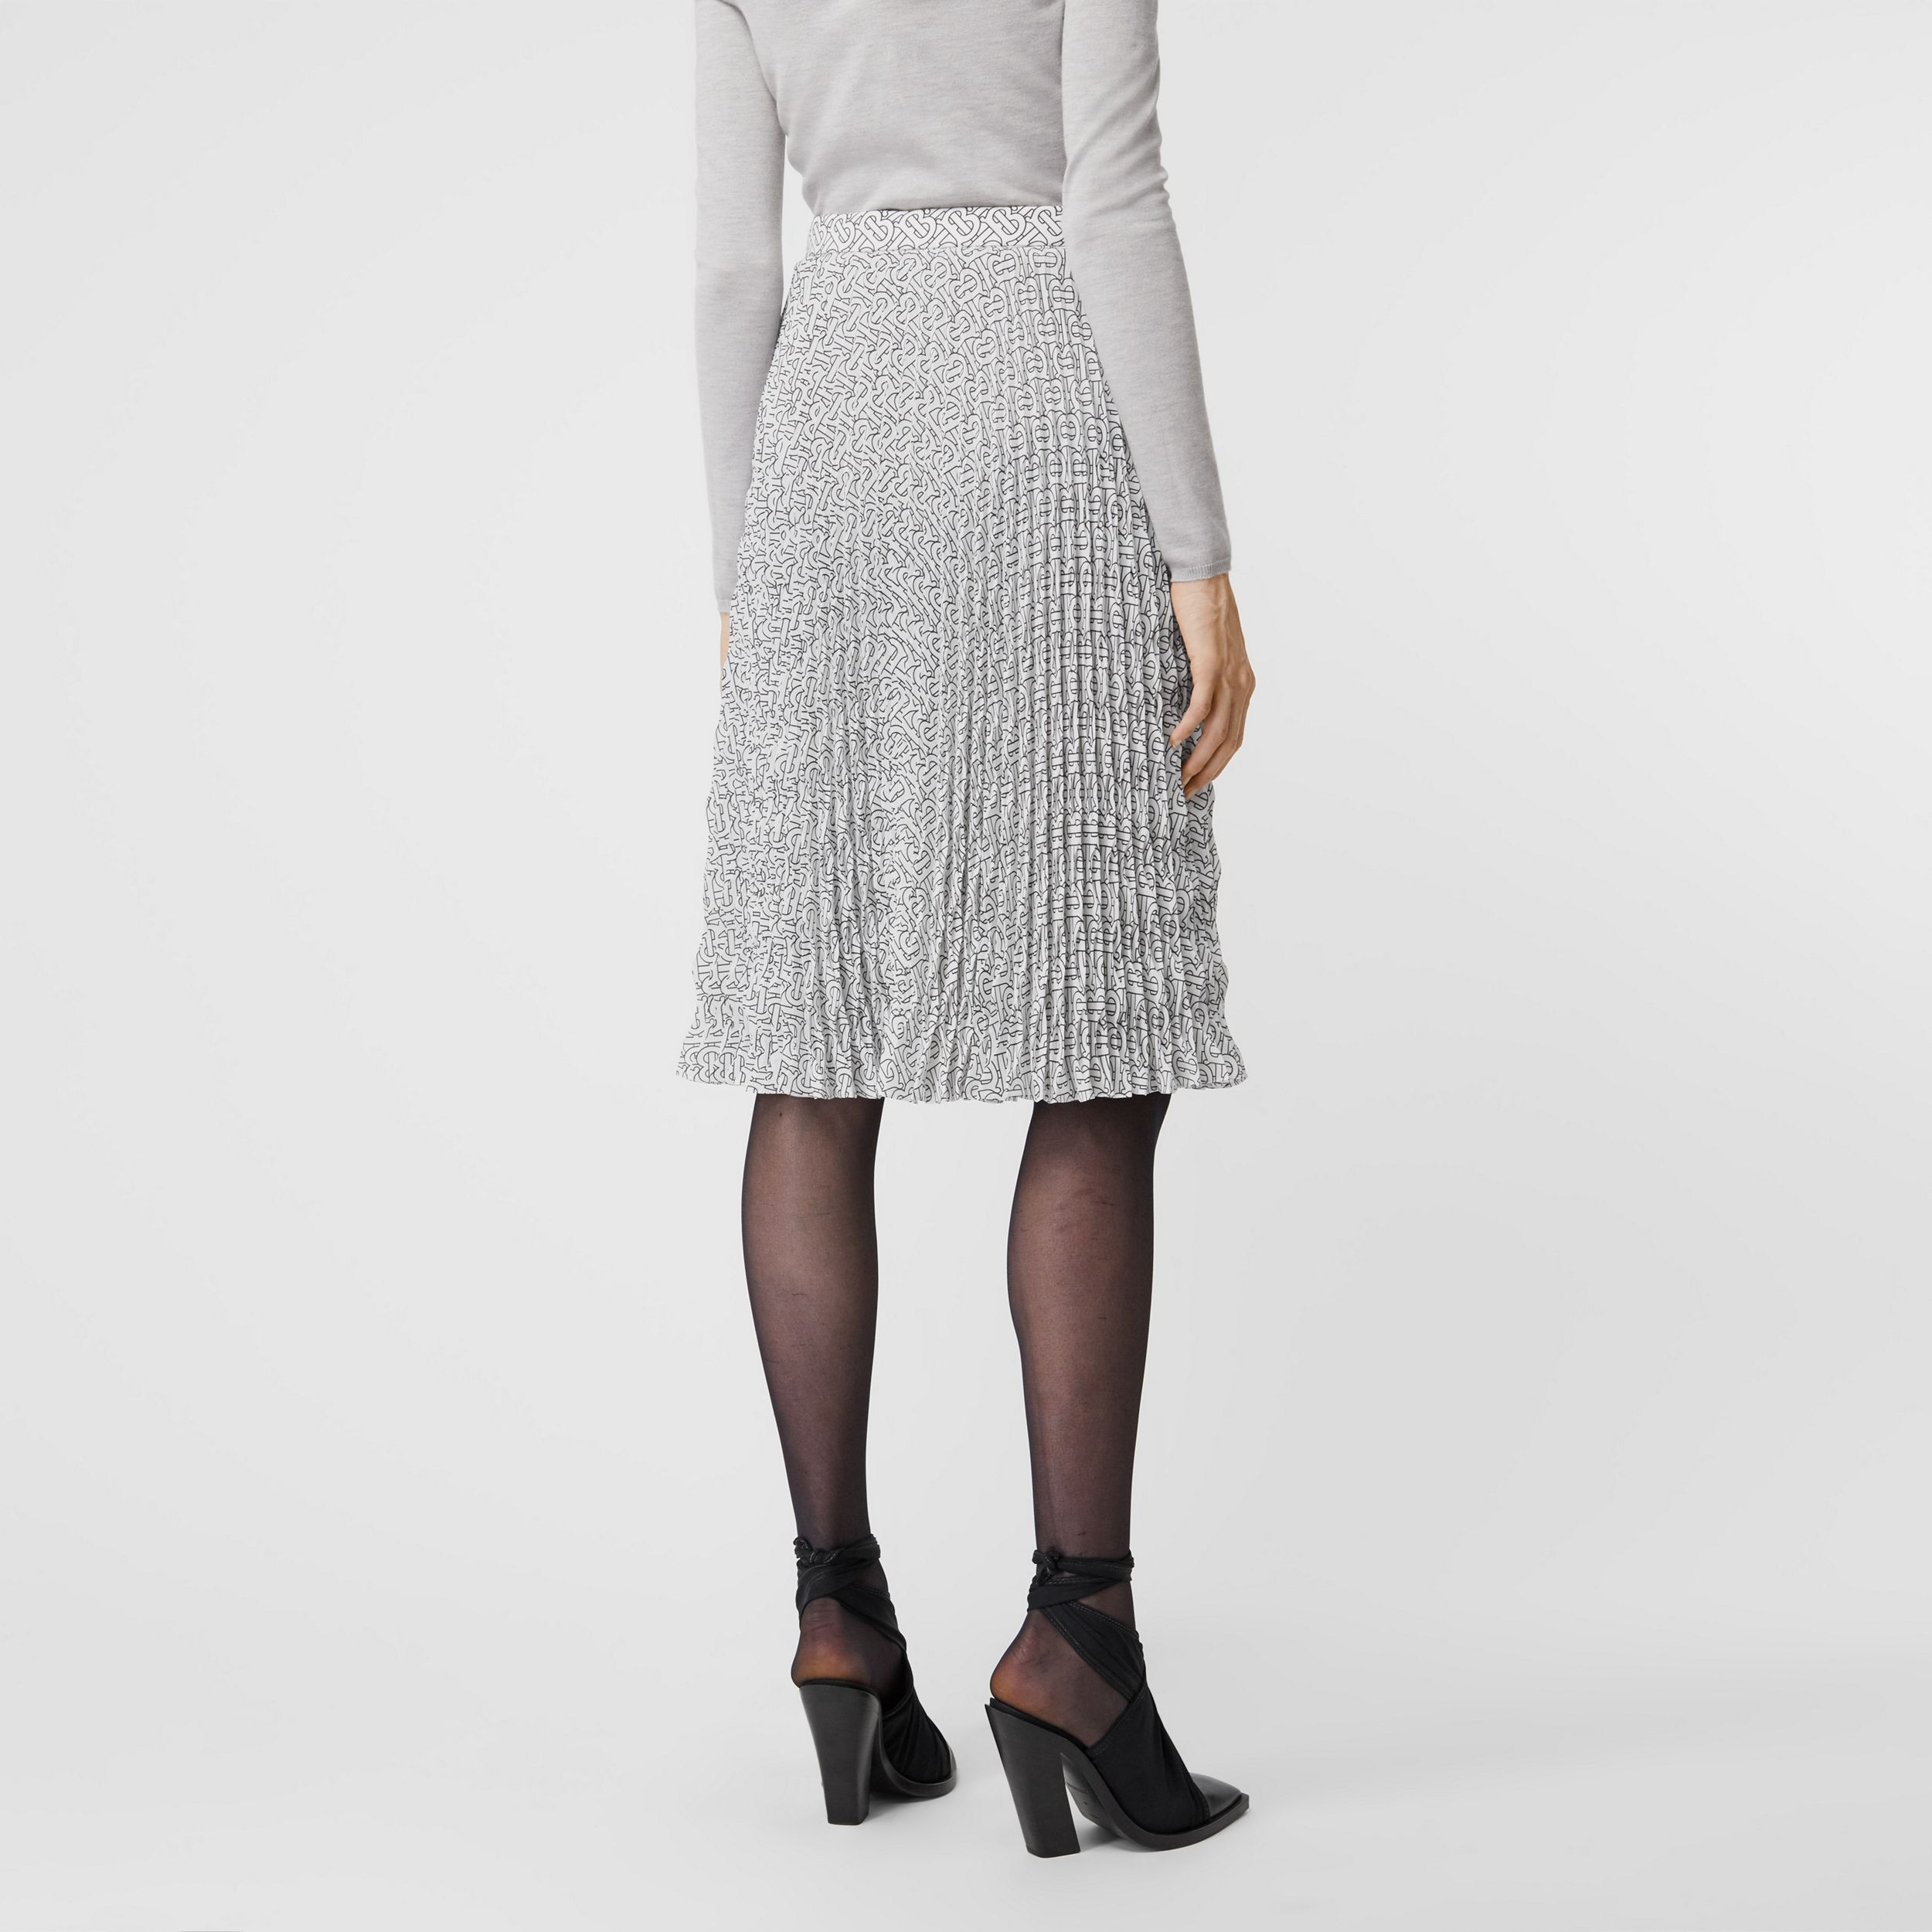 Monogram Print Crepe De Chine Pleated Skirt in White/black - Women | Burberry United Kingdom - 3